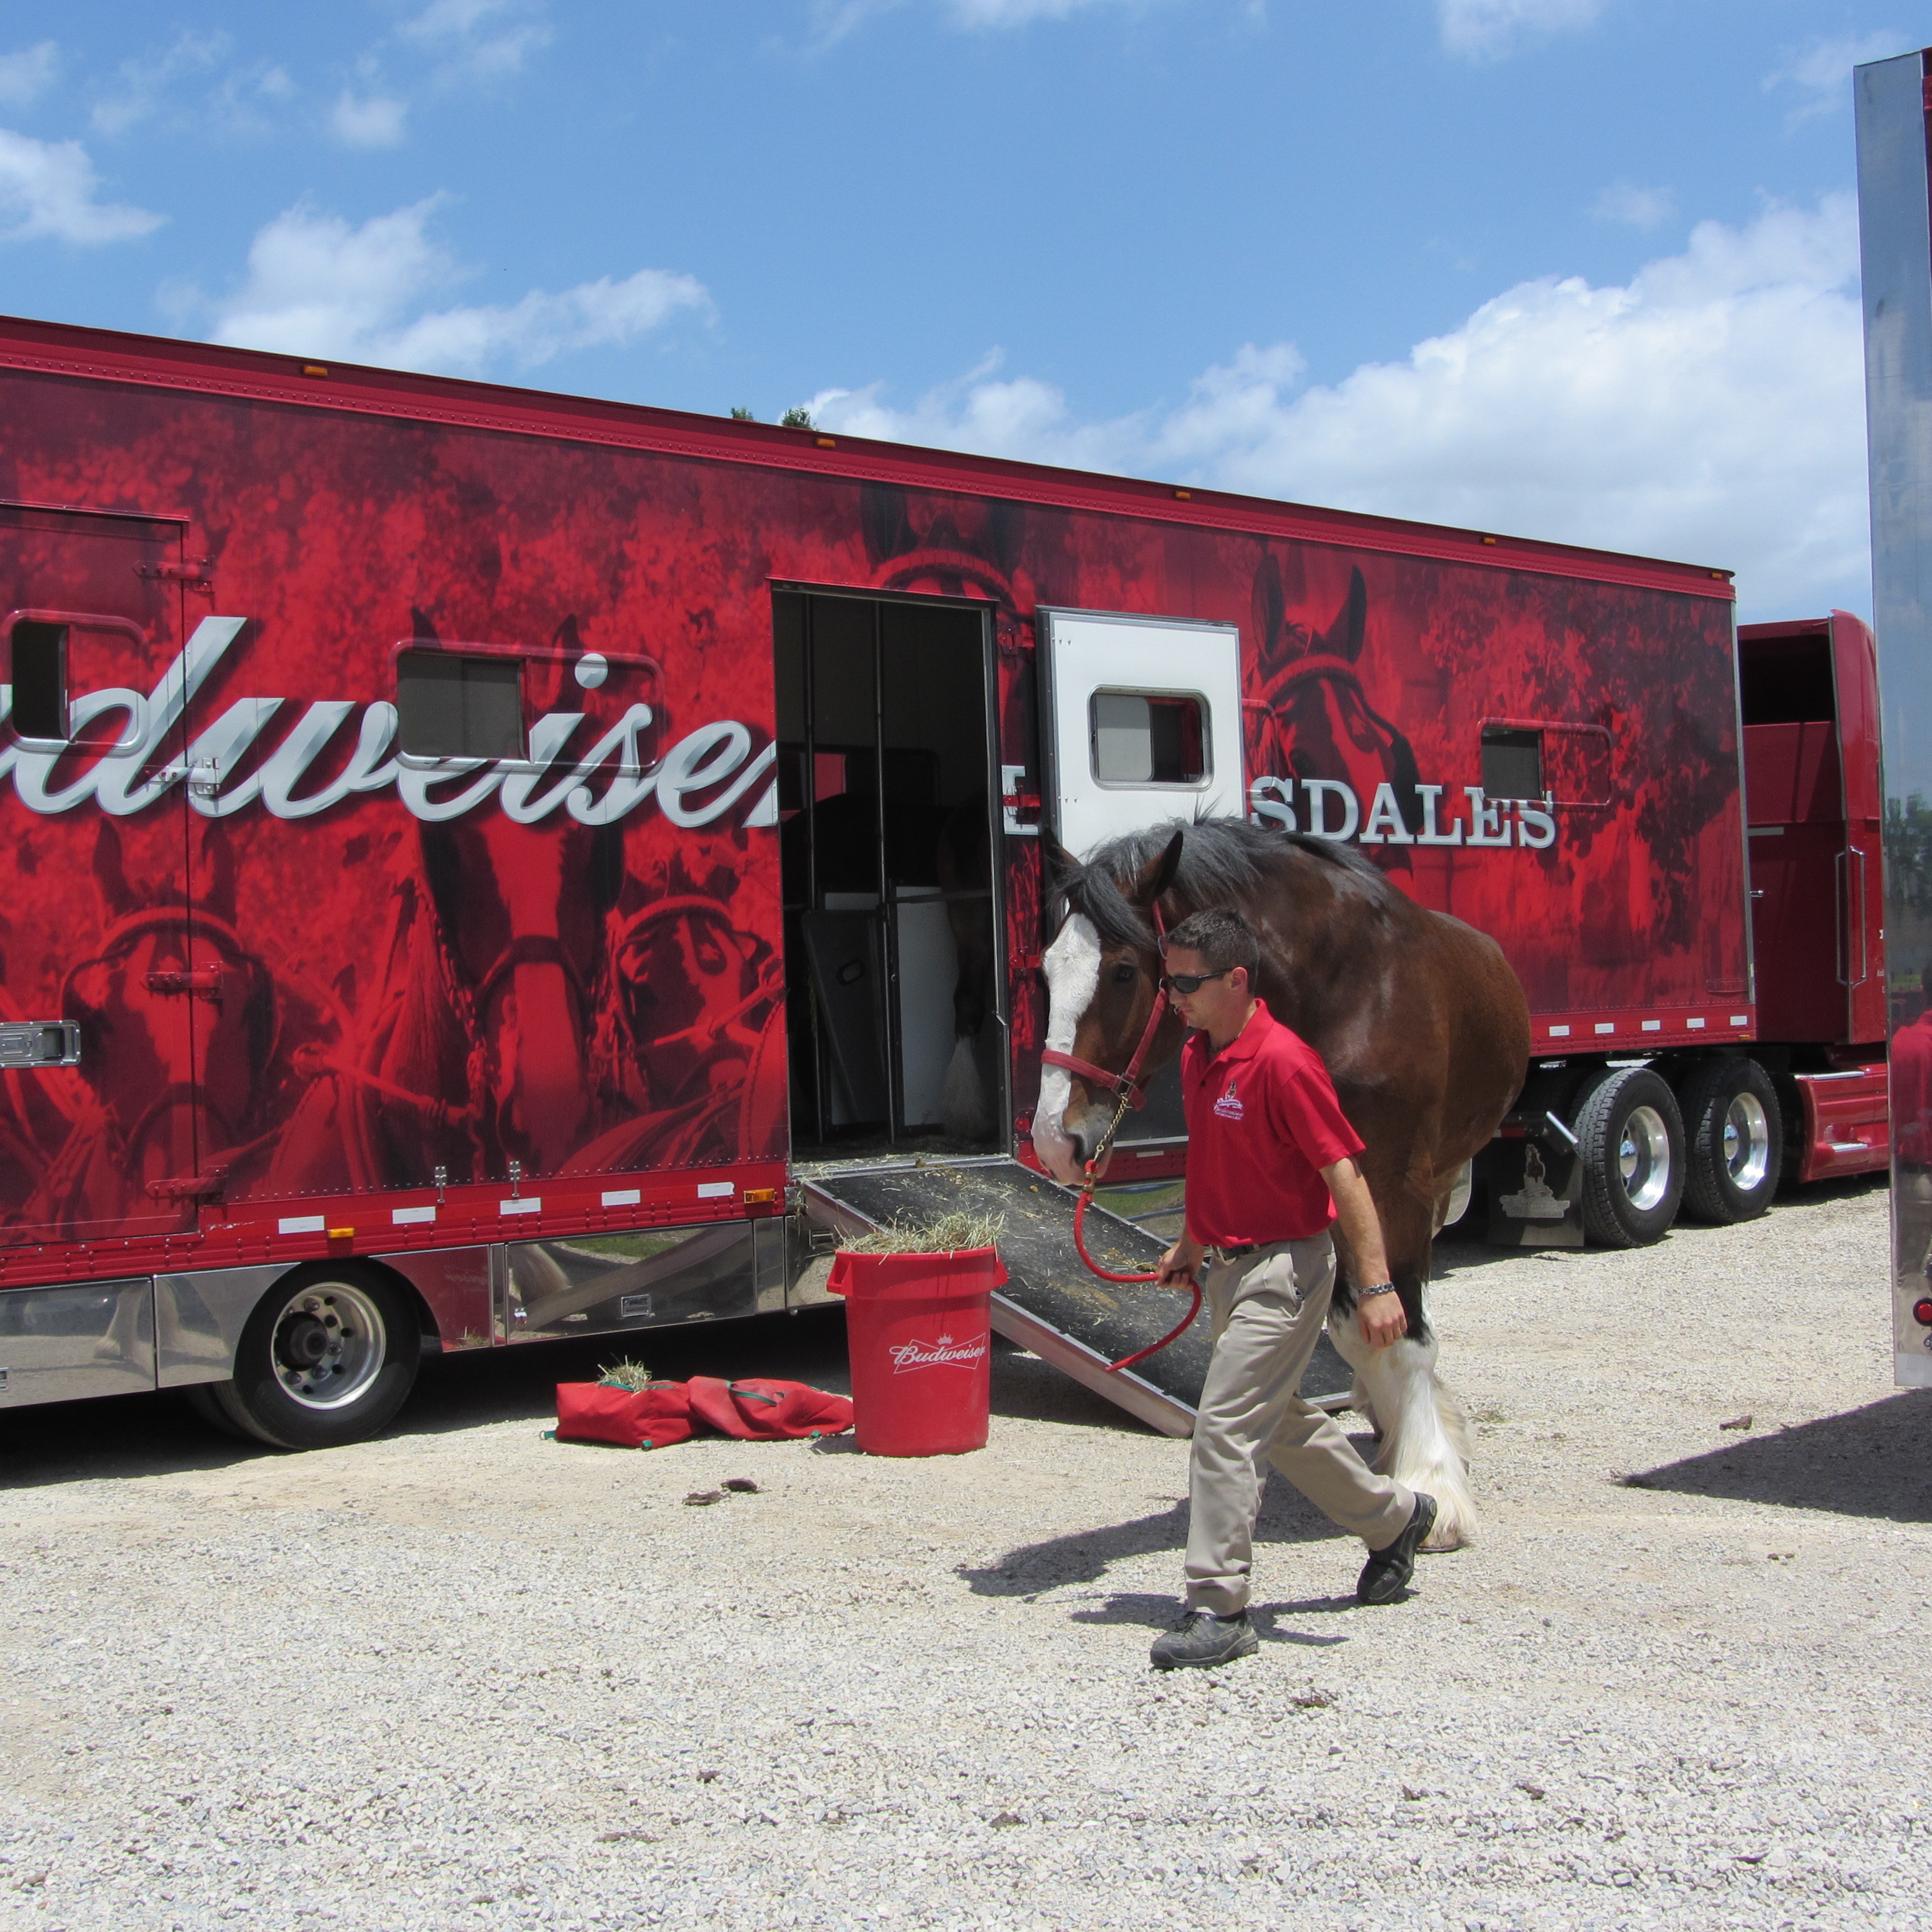 Beautiful Clydesdales